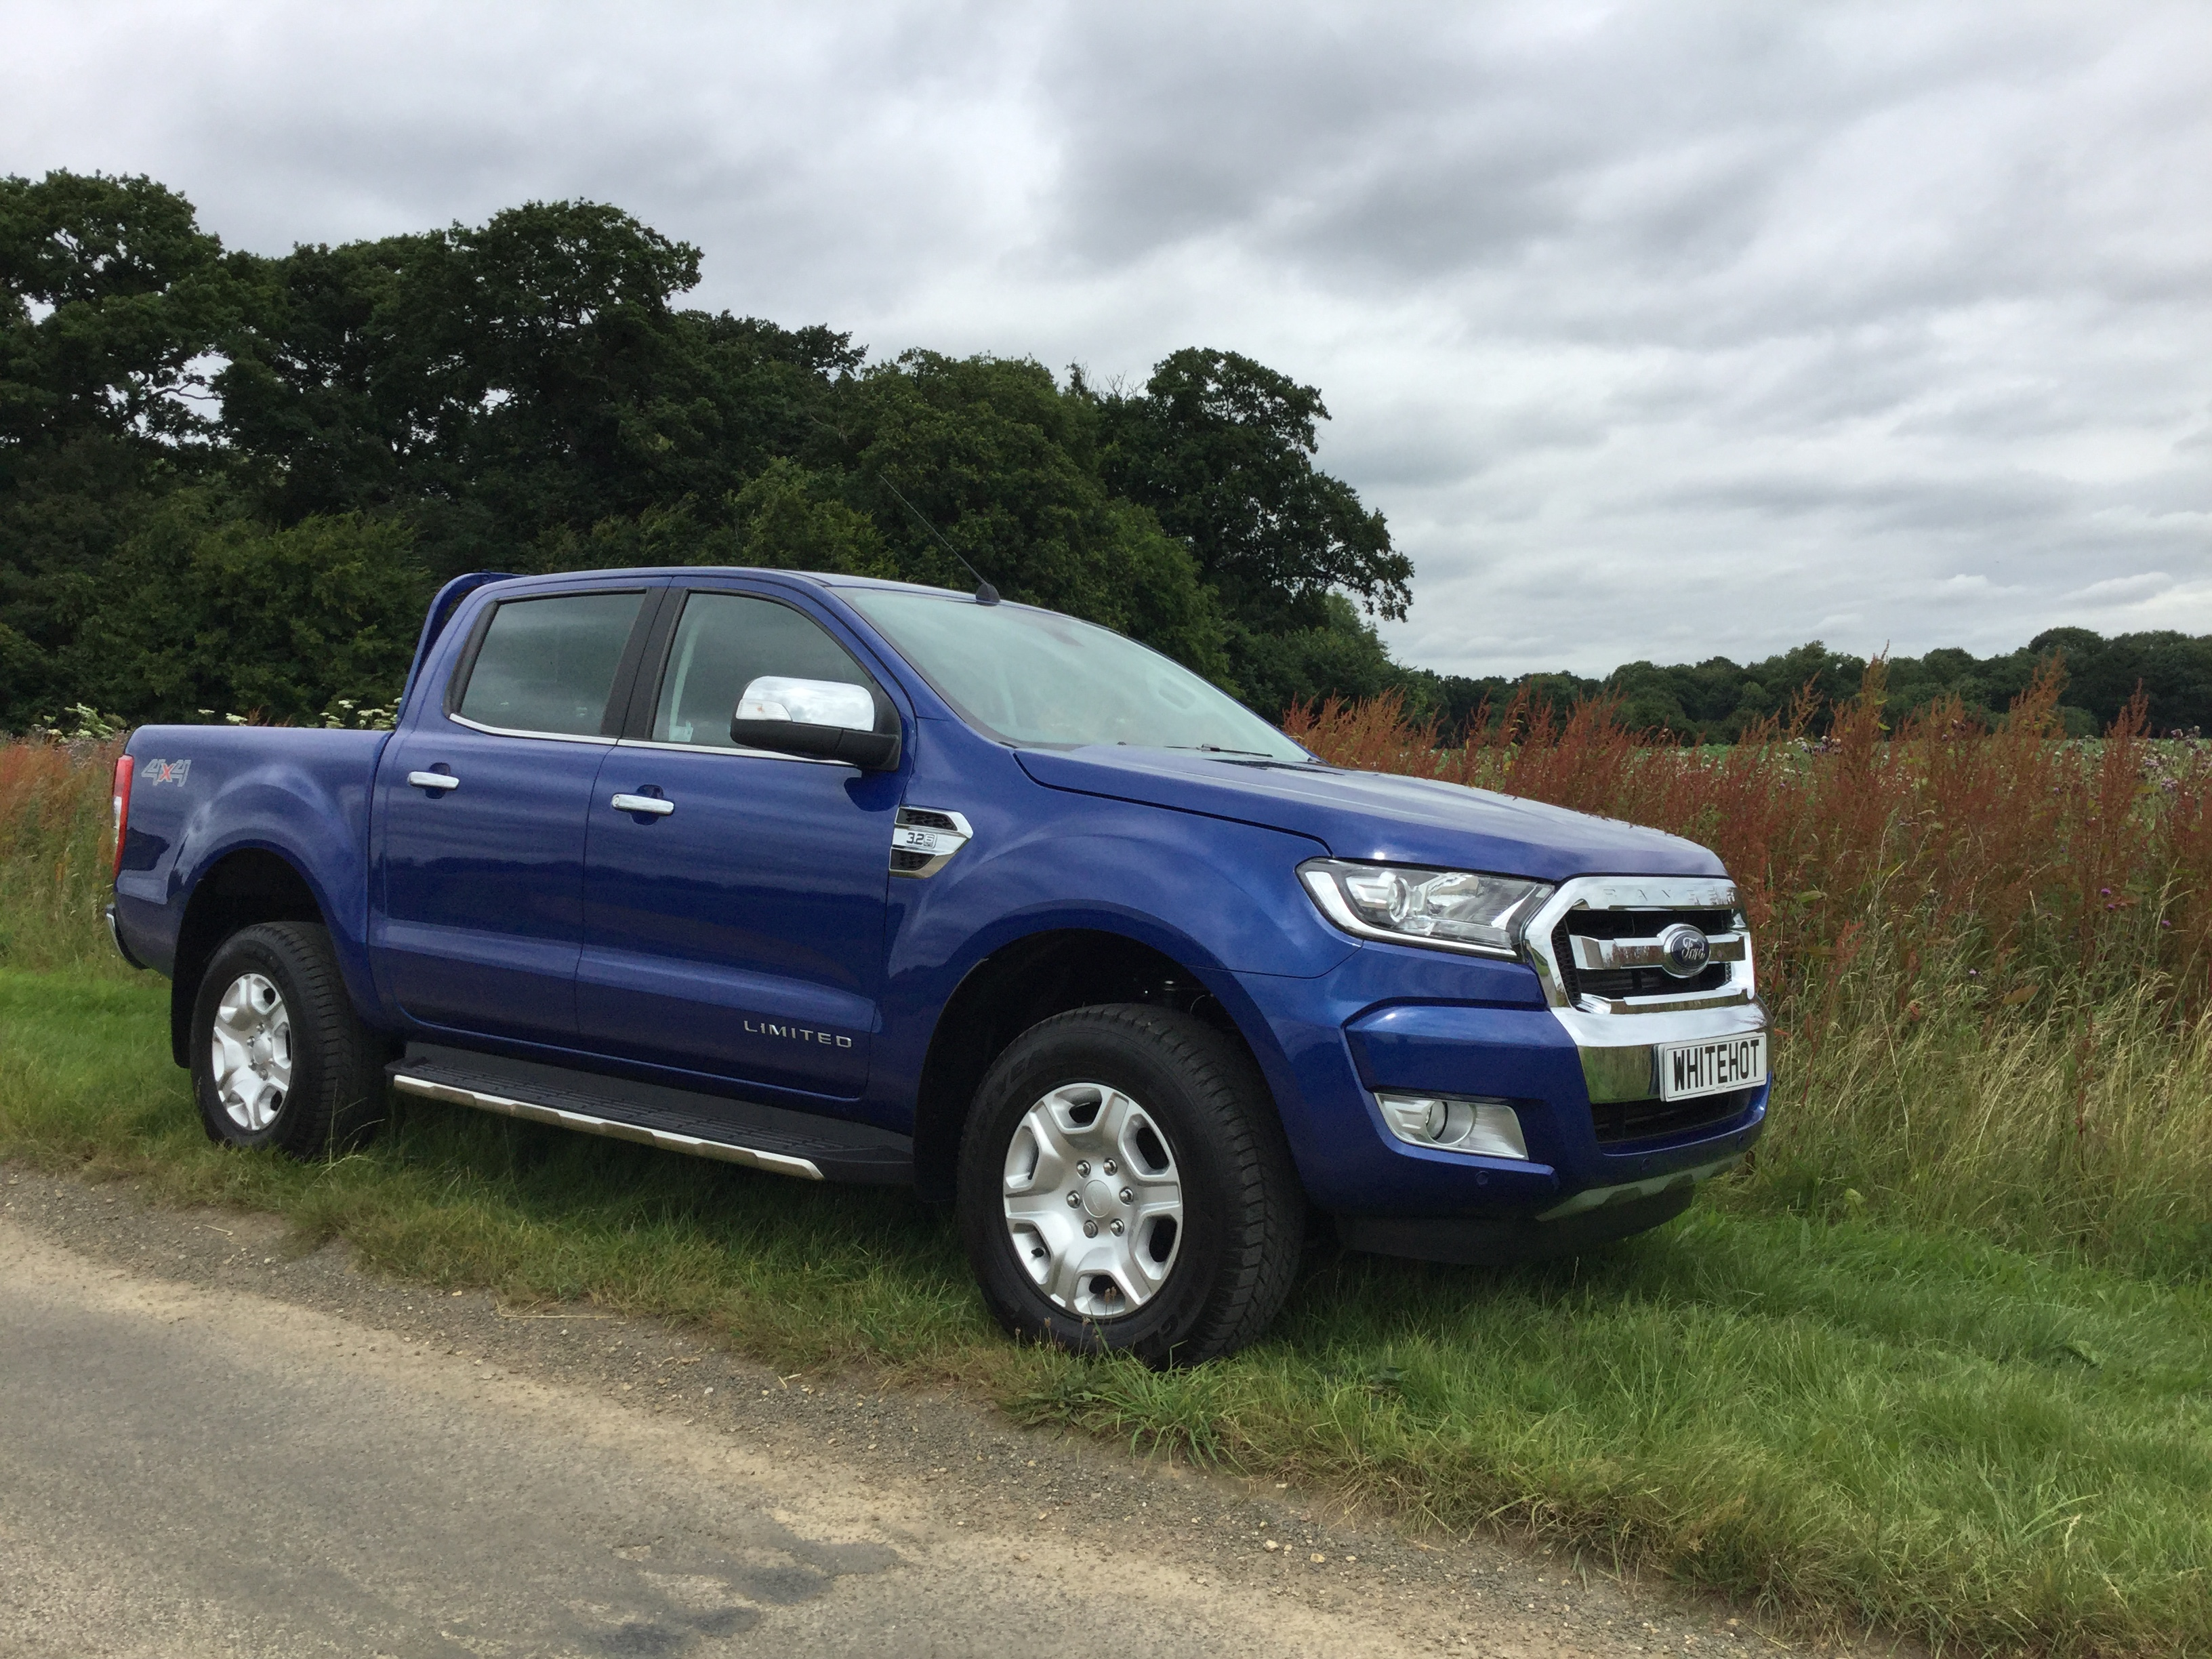 Ford Ranger 32 Wildtrak 2019 2020 New Car Price And Reviews Wiper Motor Wiring Diagram Motorhomes Rent Choice All Limited 1 2016 Model Double